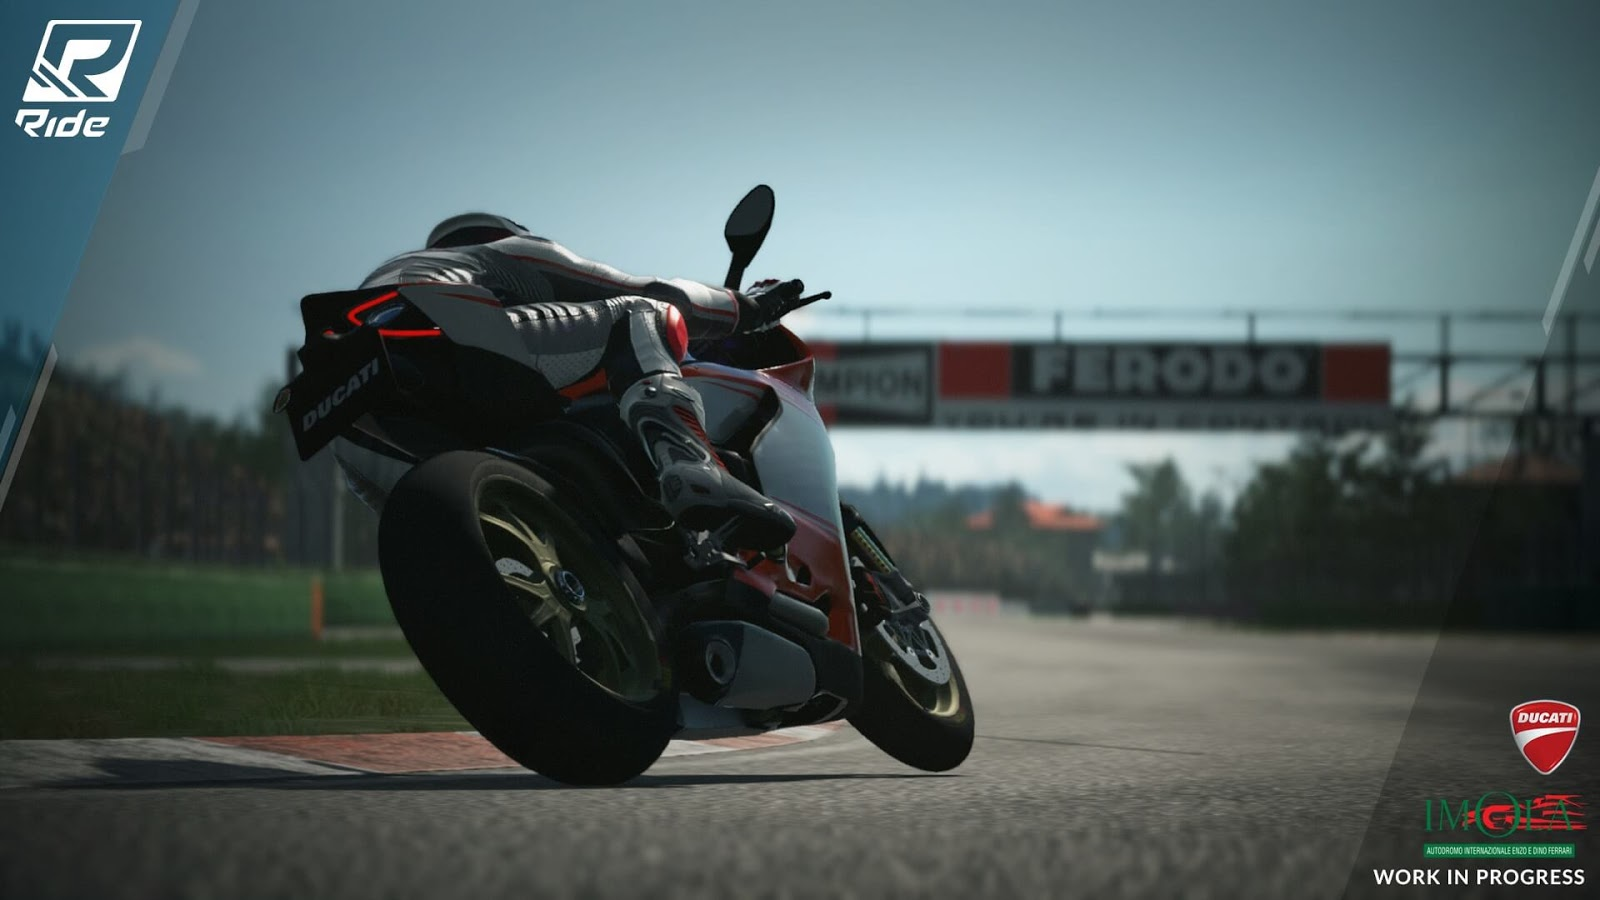 On September 15, 2014, Milestone announced the development of Ride, a ...